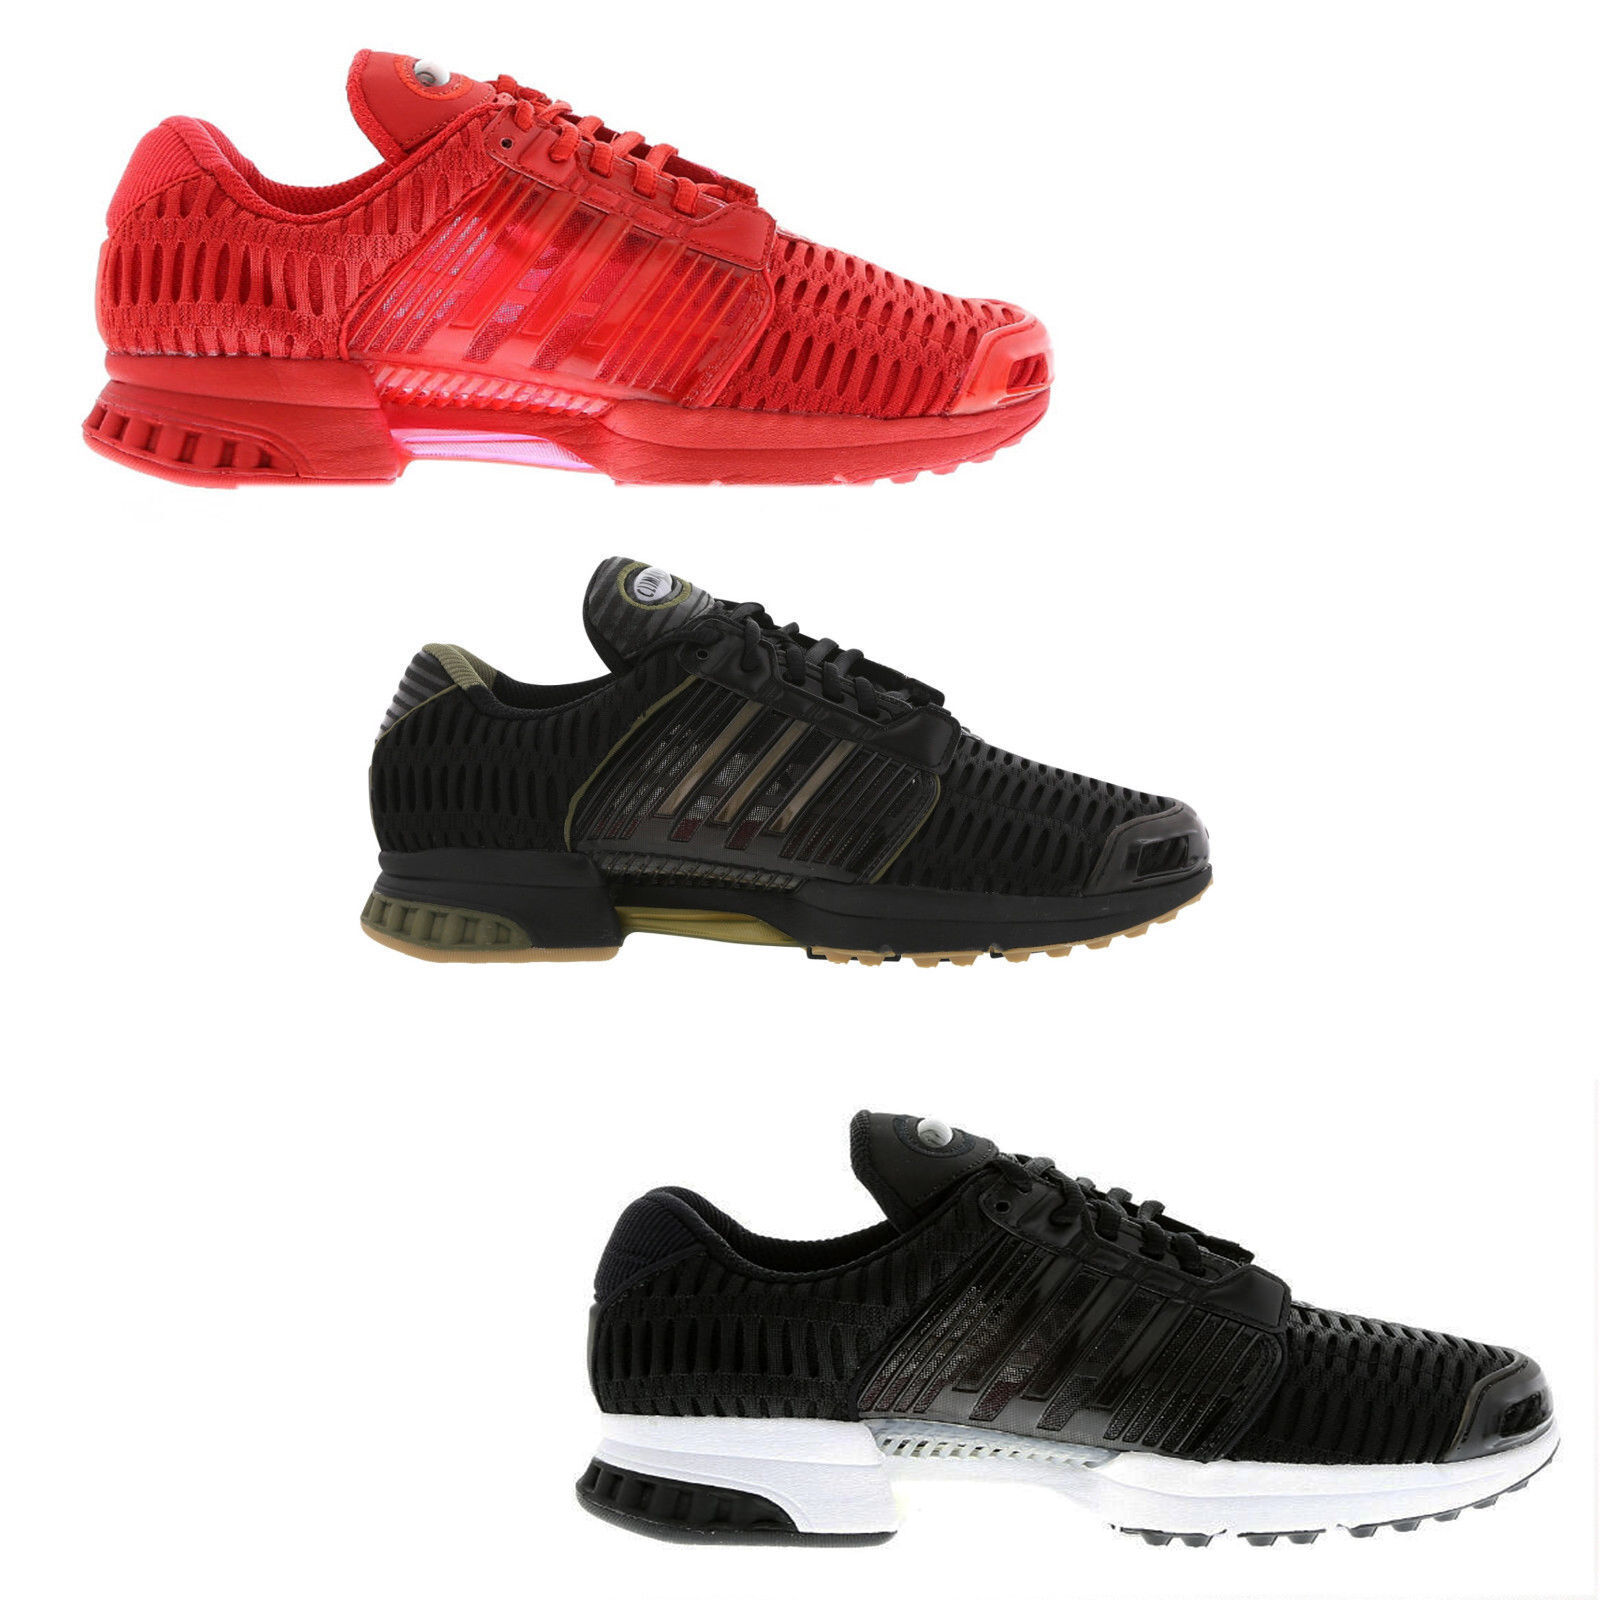 ORIGINAL ADIDAS CLIMACOOL CLIMA COOL 1 BLACK RED WHITE TRAINERS